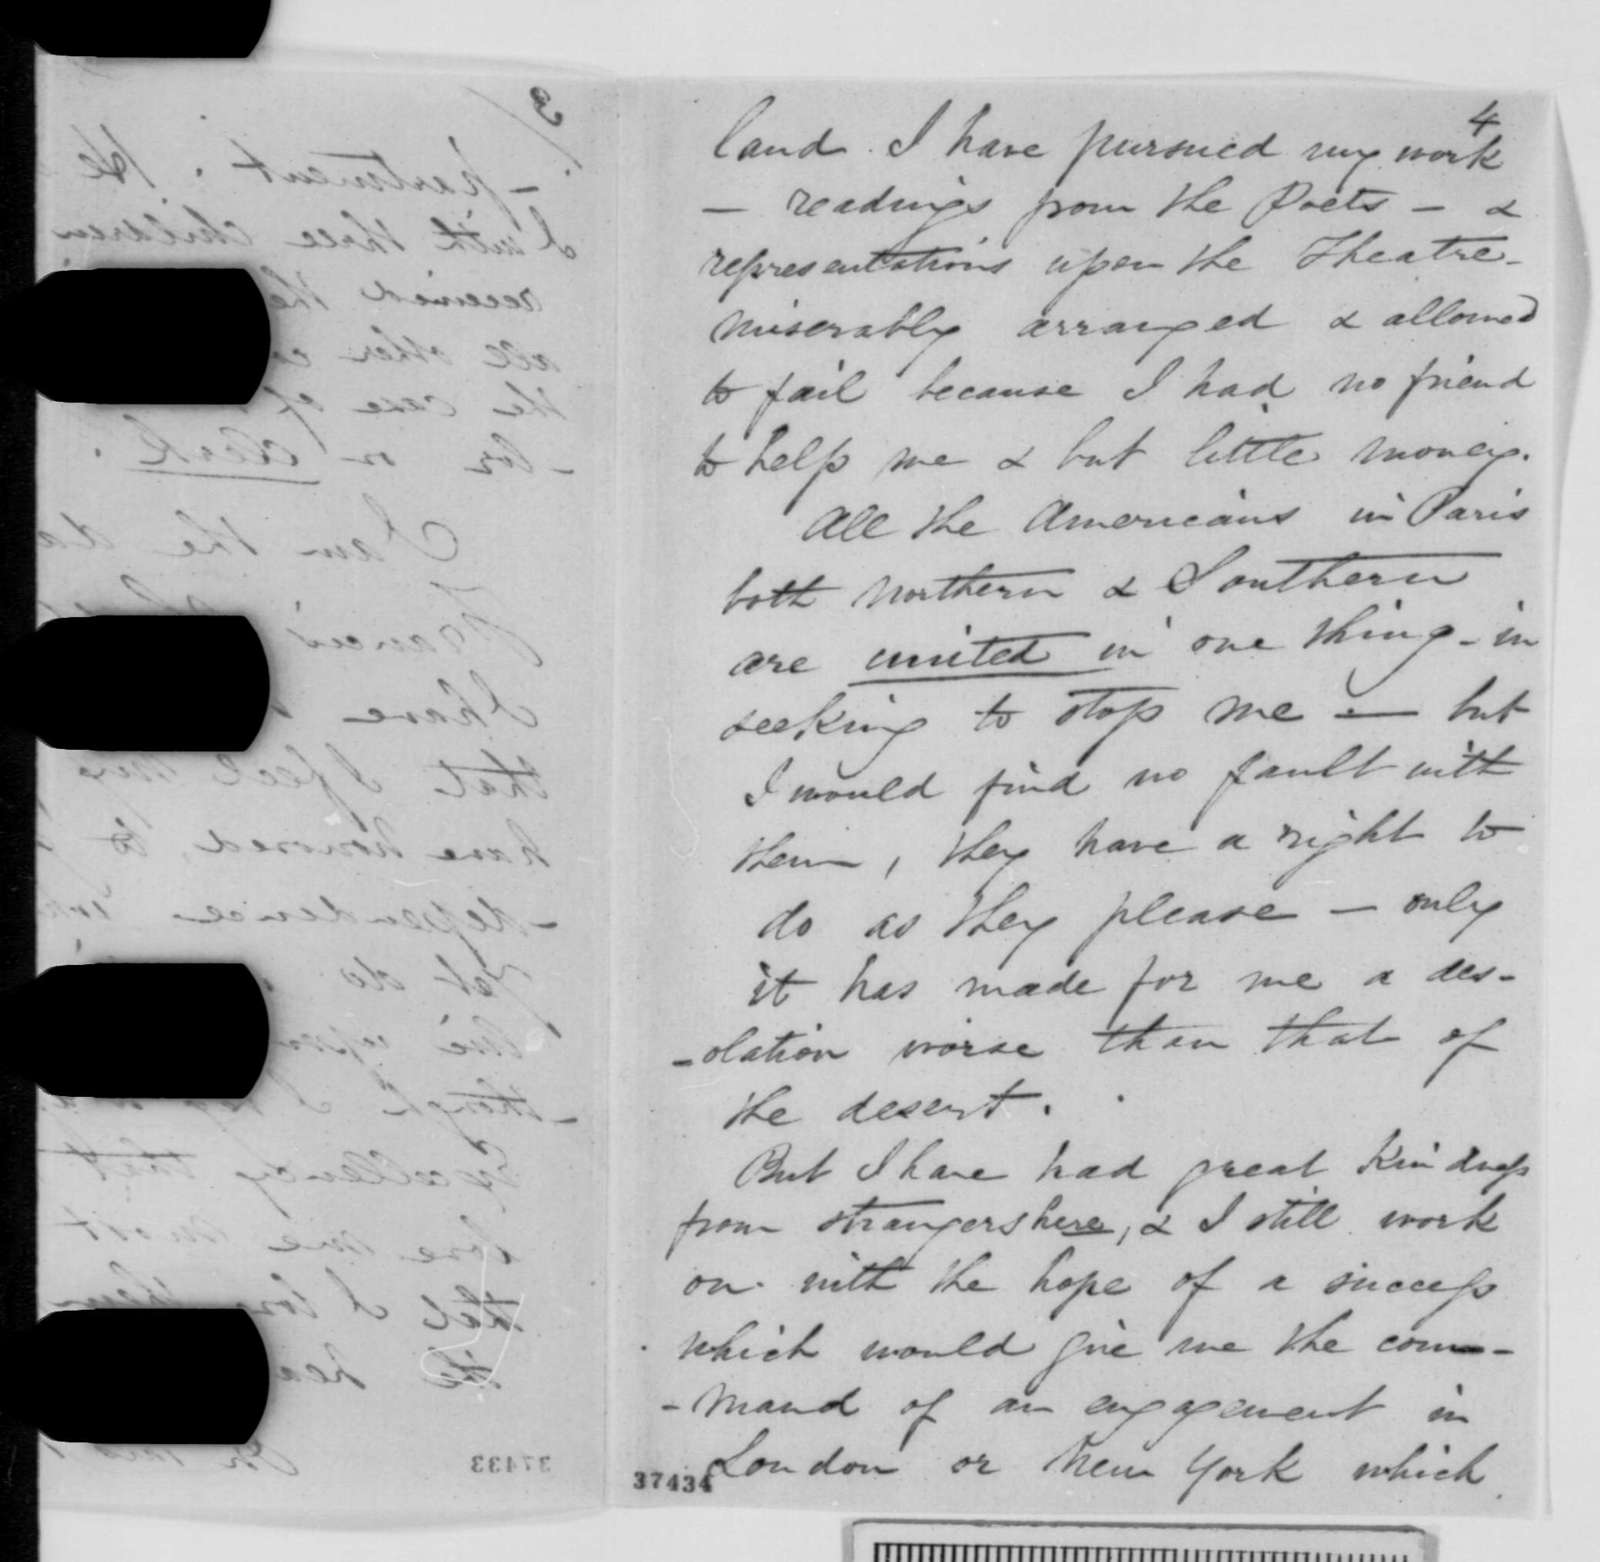 Ellen K. Blunt to Abraham Lincoln, Thursday, October 20, 1864  (Seeks pension; with extract of letter from Jules Janin)